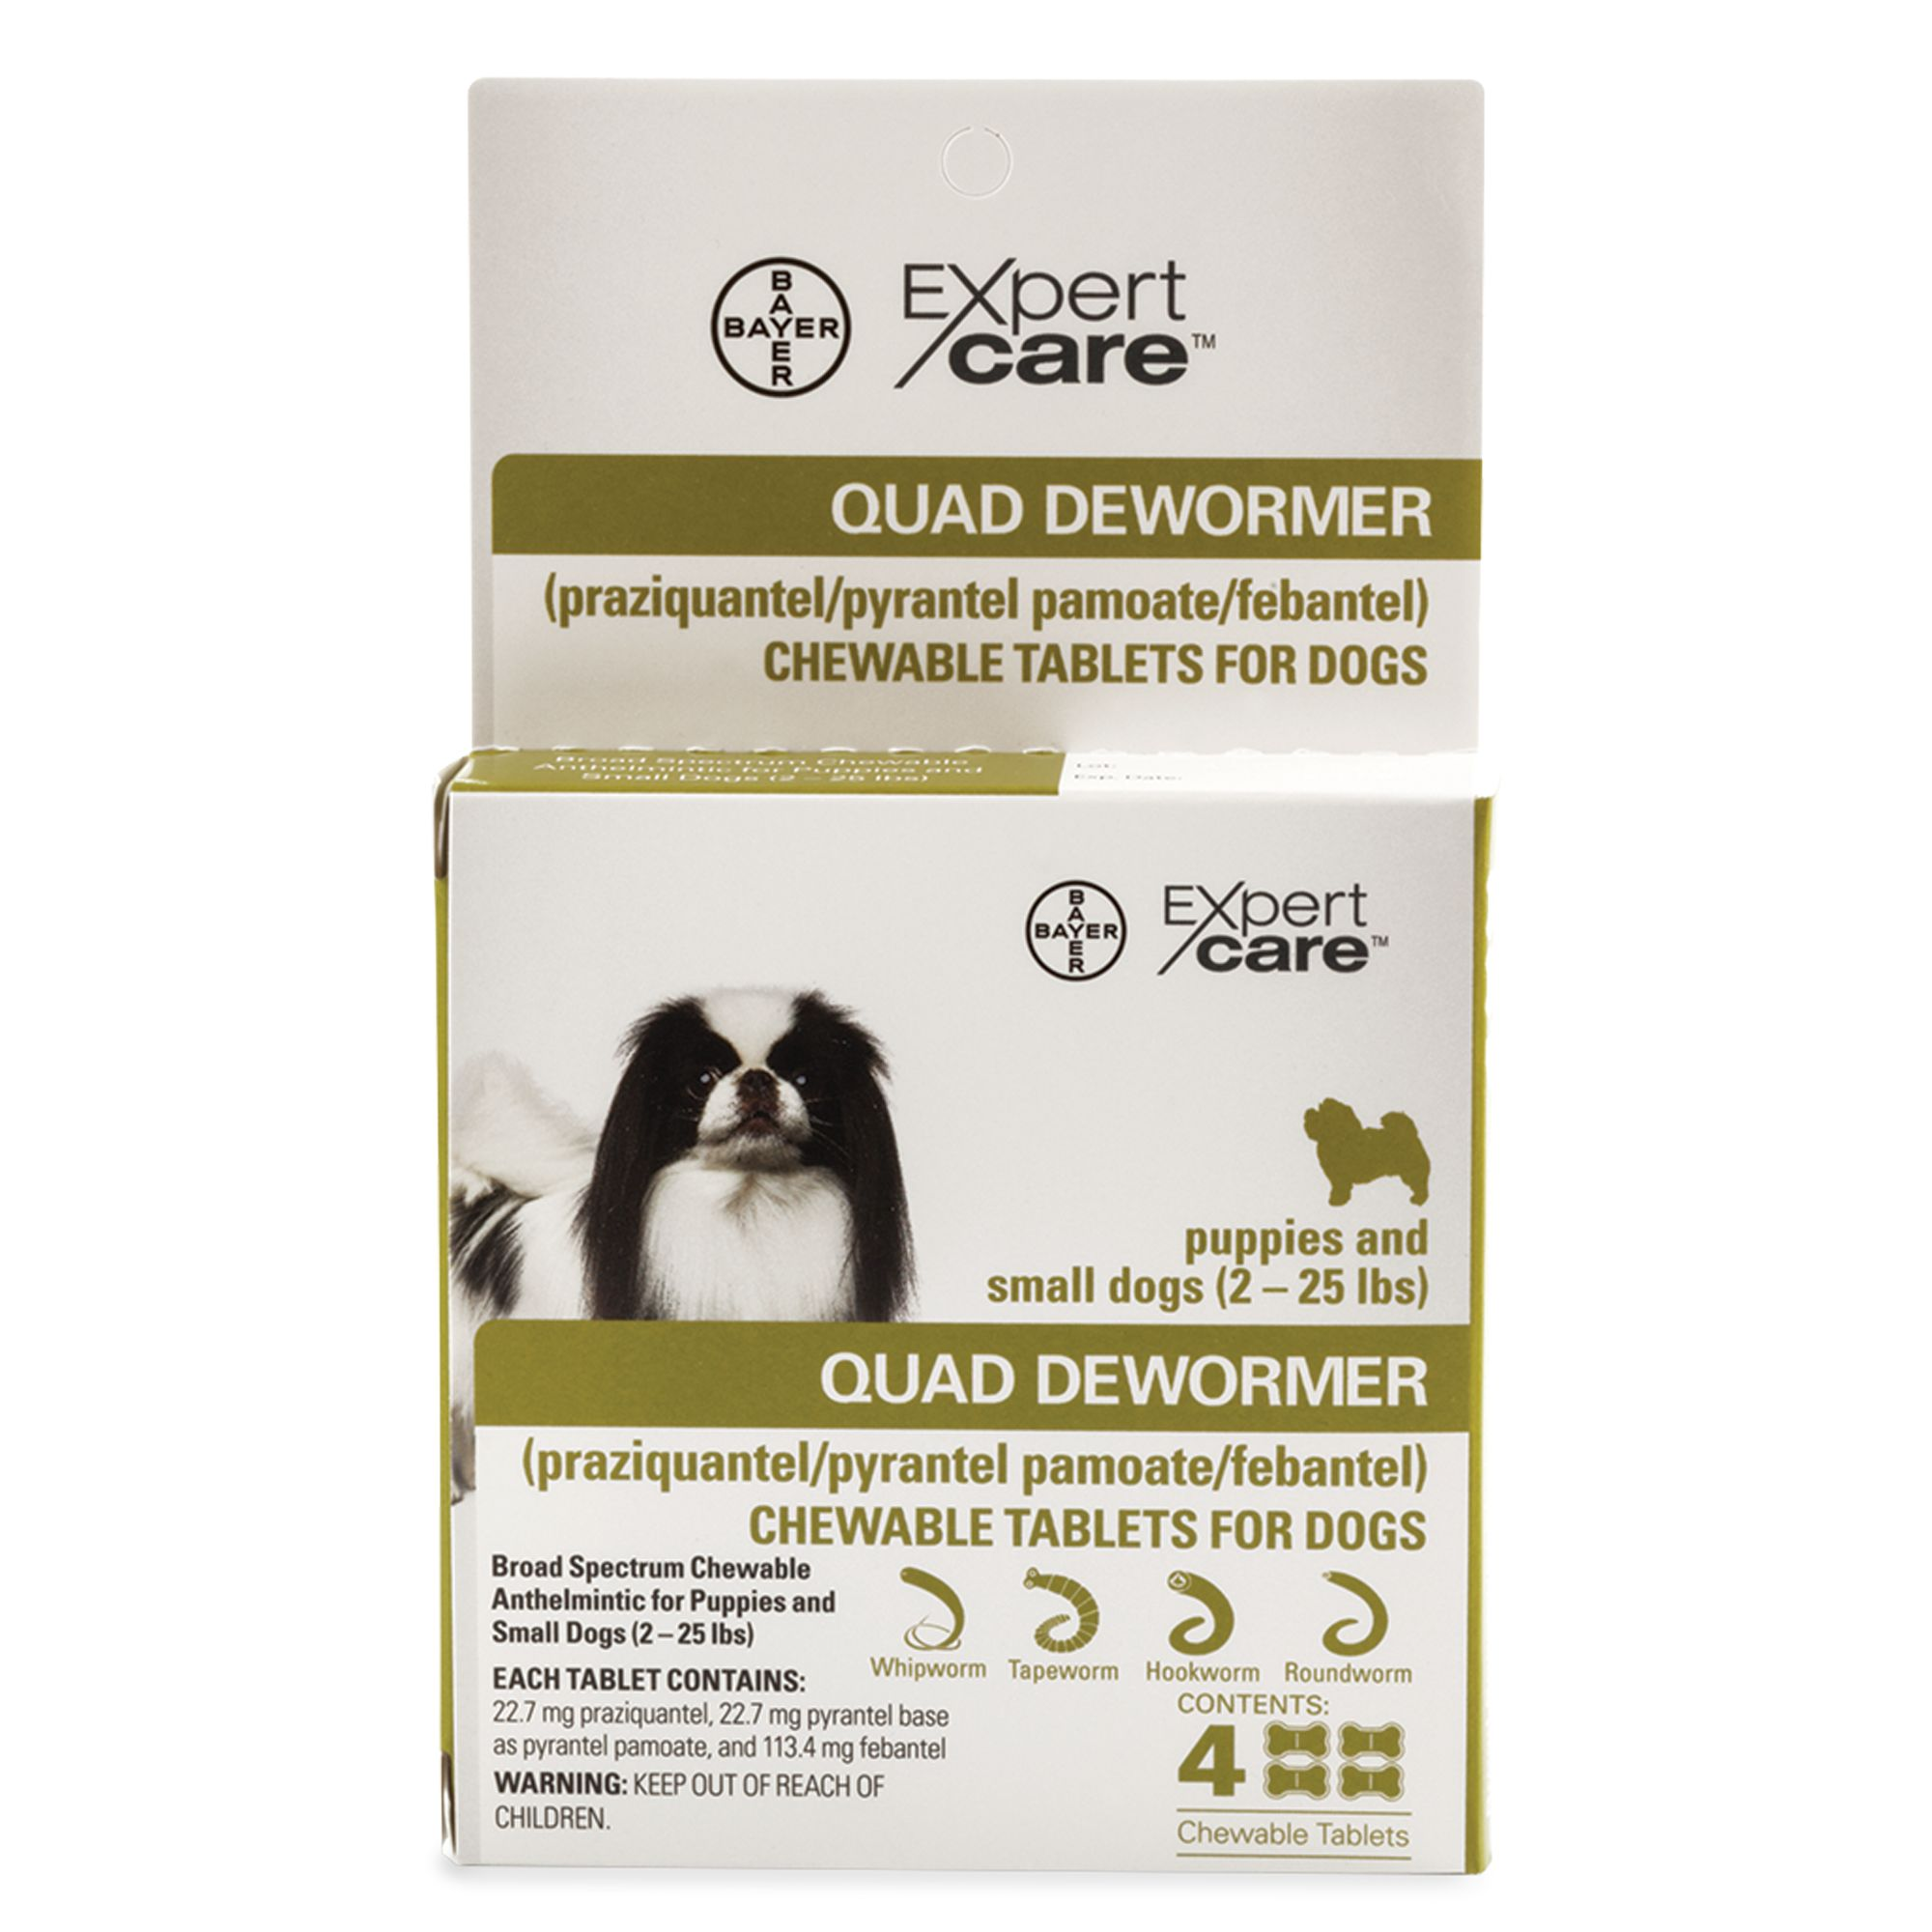 Bayer Expert Care 2 25 Lb Dog Quad Dewormer Size 2 Lb